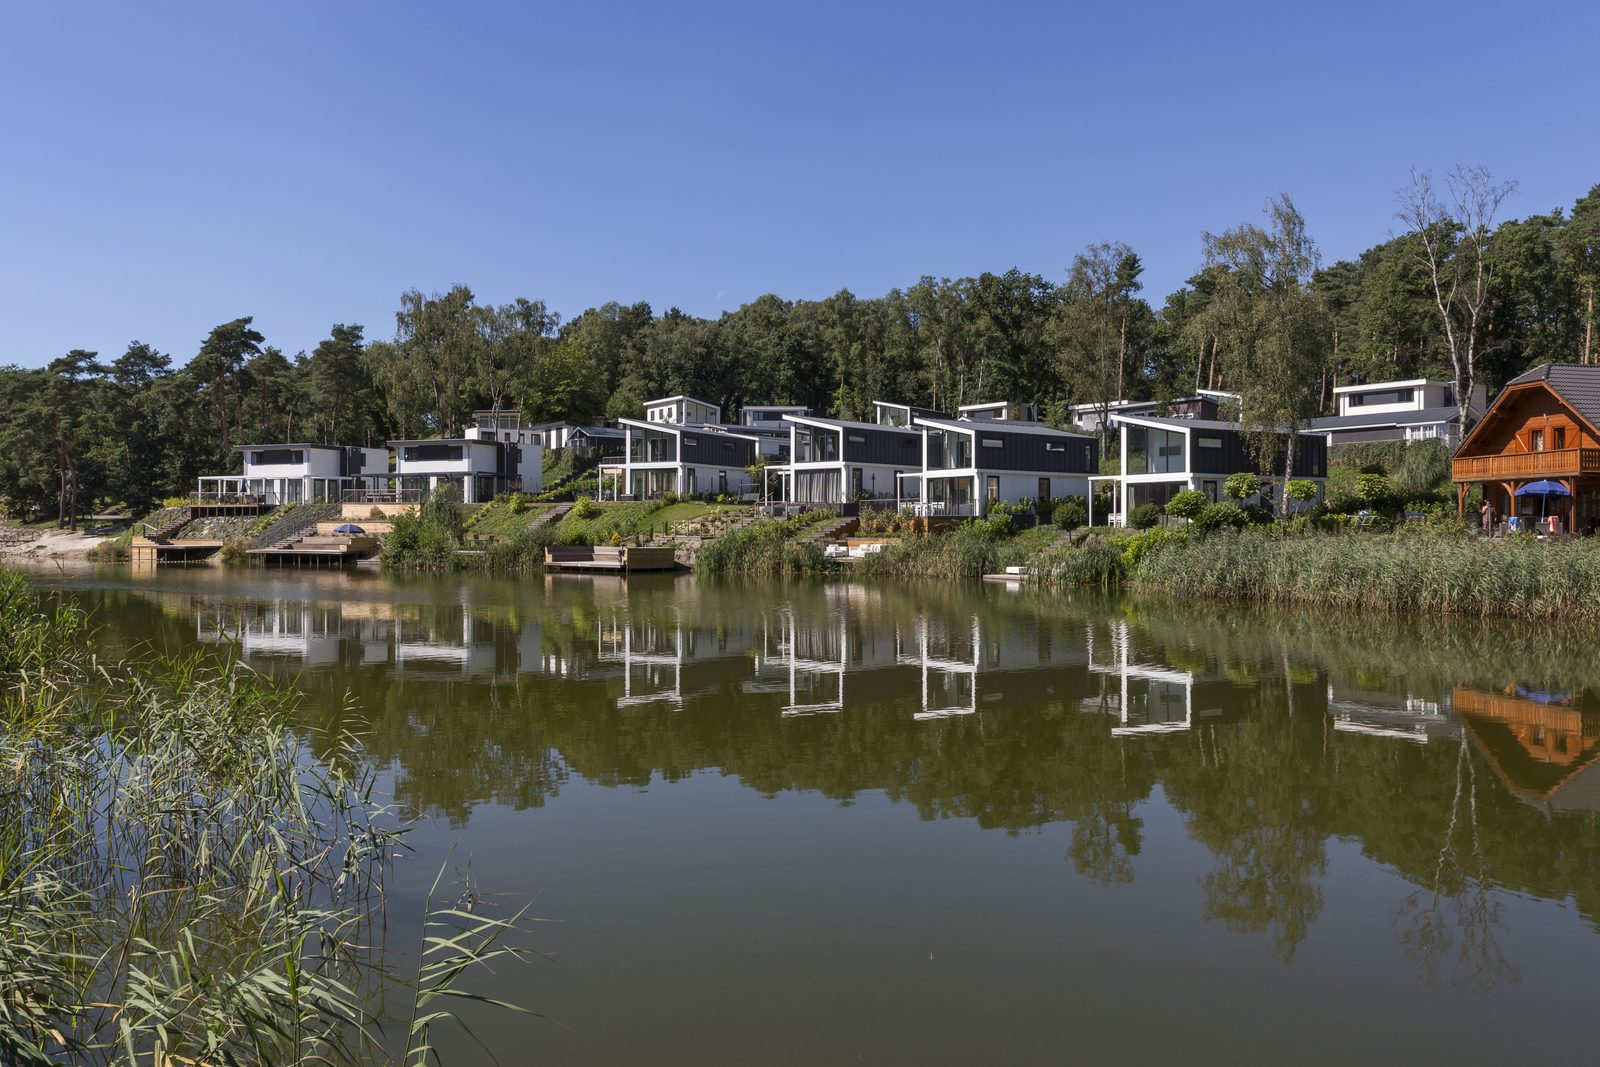 Experience the beautiful fall colors at EuroParcs Resort Brunssummerheide